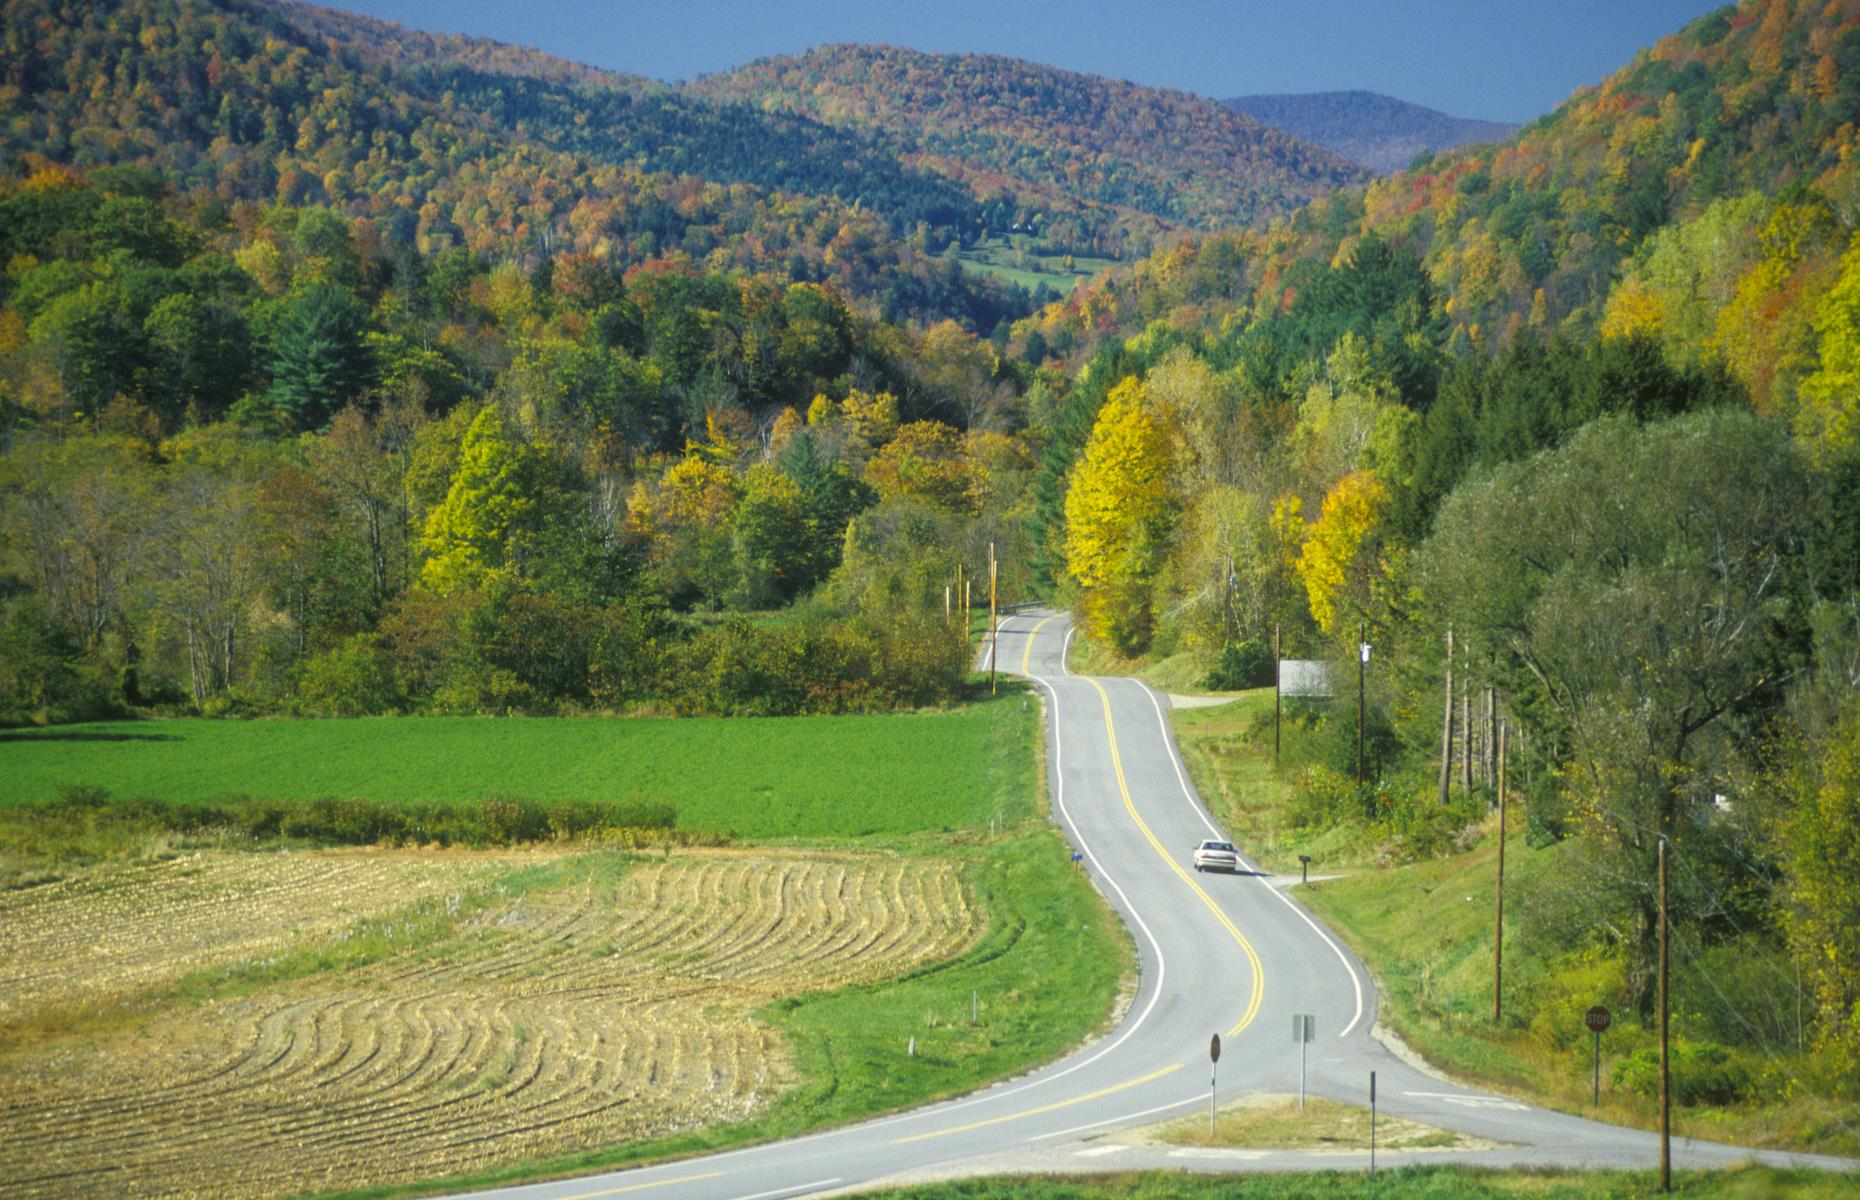 Slide 90 of 101: Following Vermont's Scenic Route 100 Byway (pictured), this New England road trip winds from the northern town of Stowe to Weston in Windsor County. While each town has charms aplenty, the road itself steals the show. Even more impressive in the fall, it clings to the eastern edge of the Green Mountains. Without any pit stops, the 100-mile (161km) drive takes under two hours 30 minutes. Discover the most beautiful scenic byway in every state.